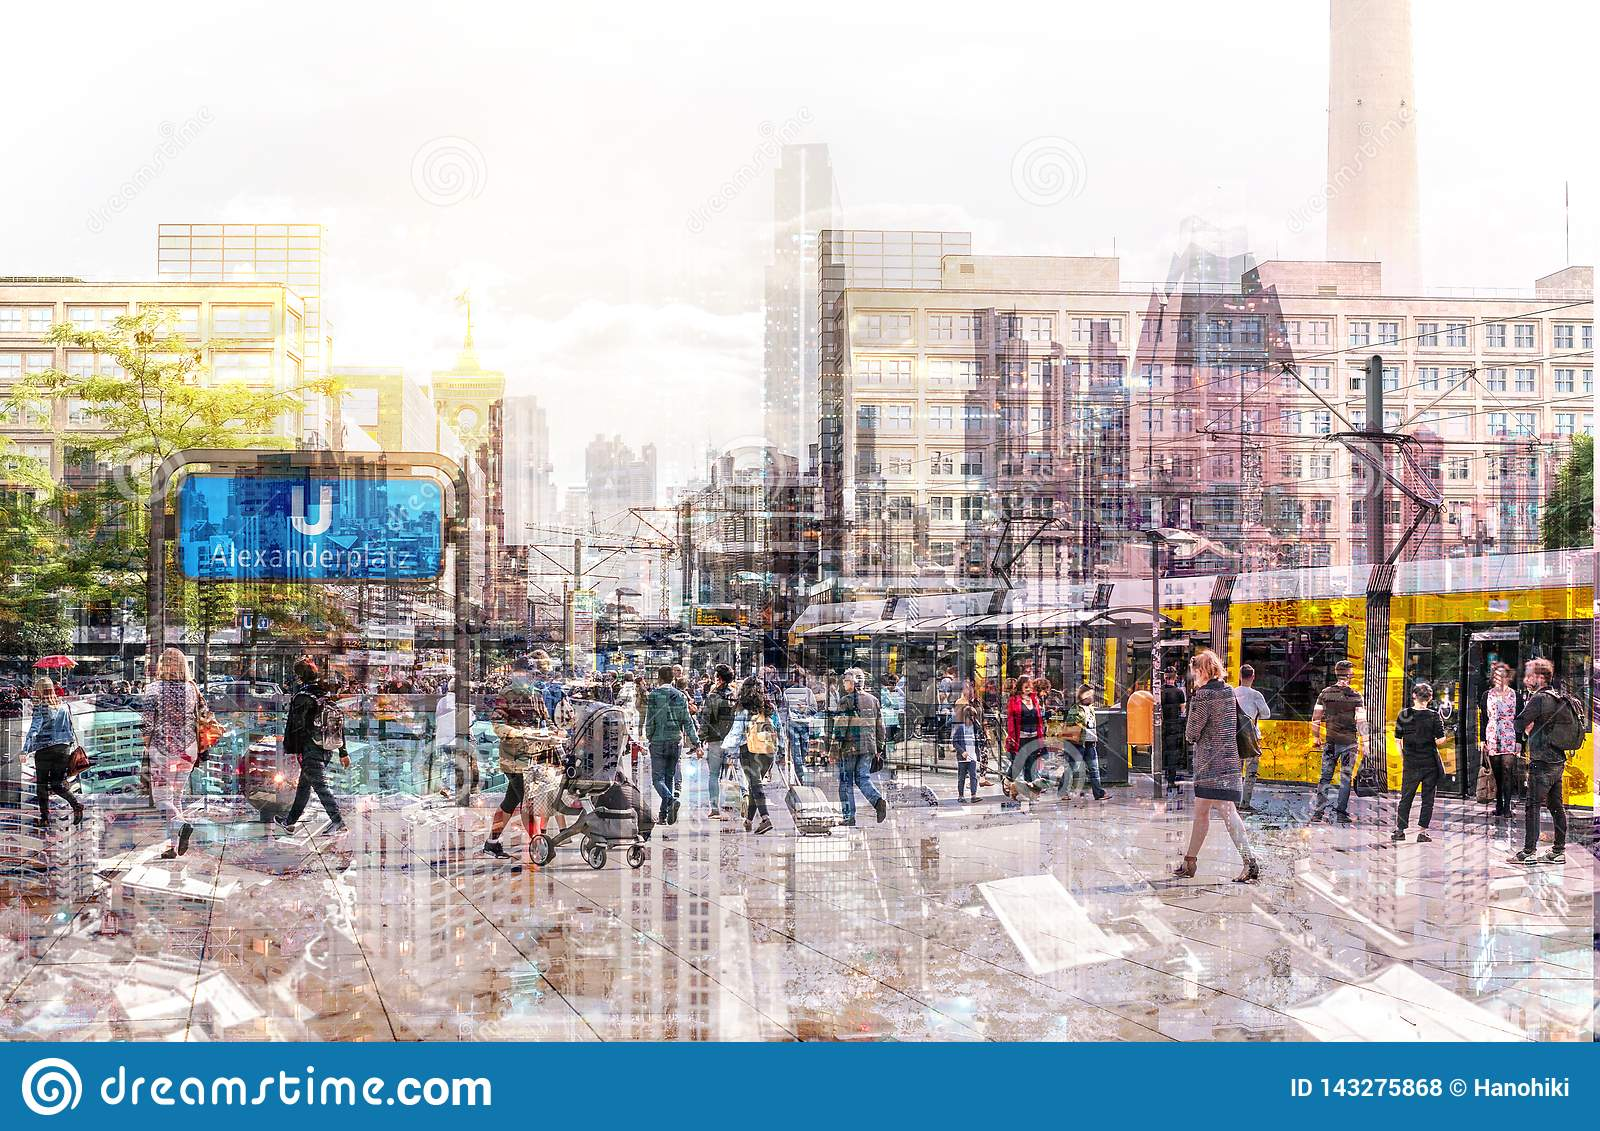 Crowd of anonymous people walking on busy city street - abstract cityscape